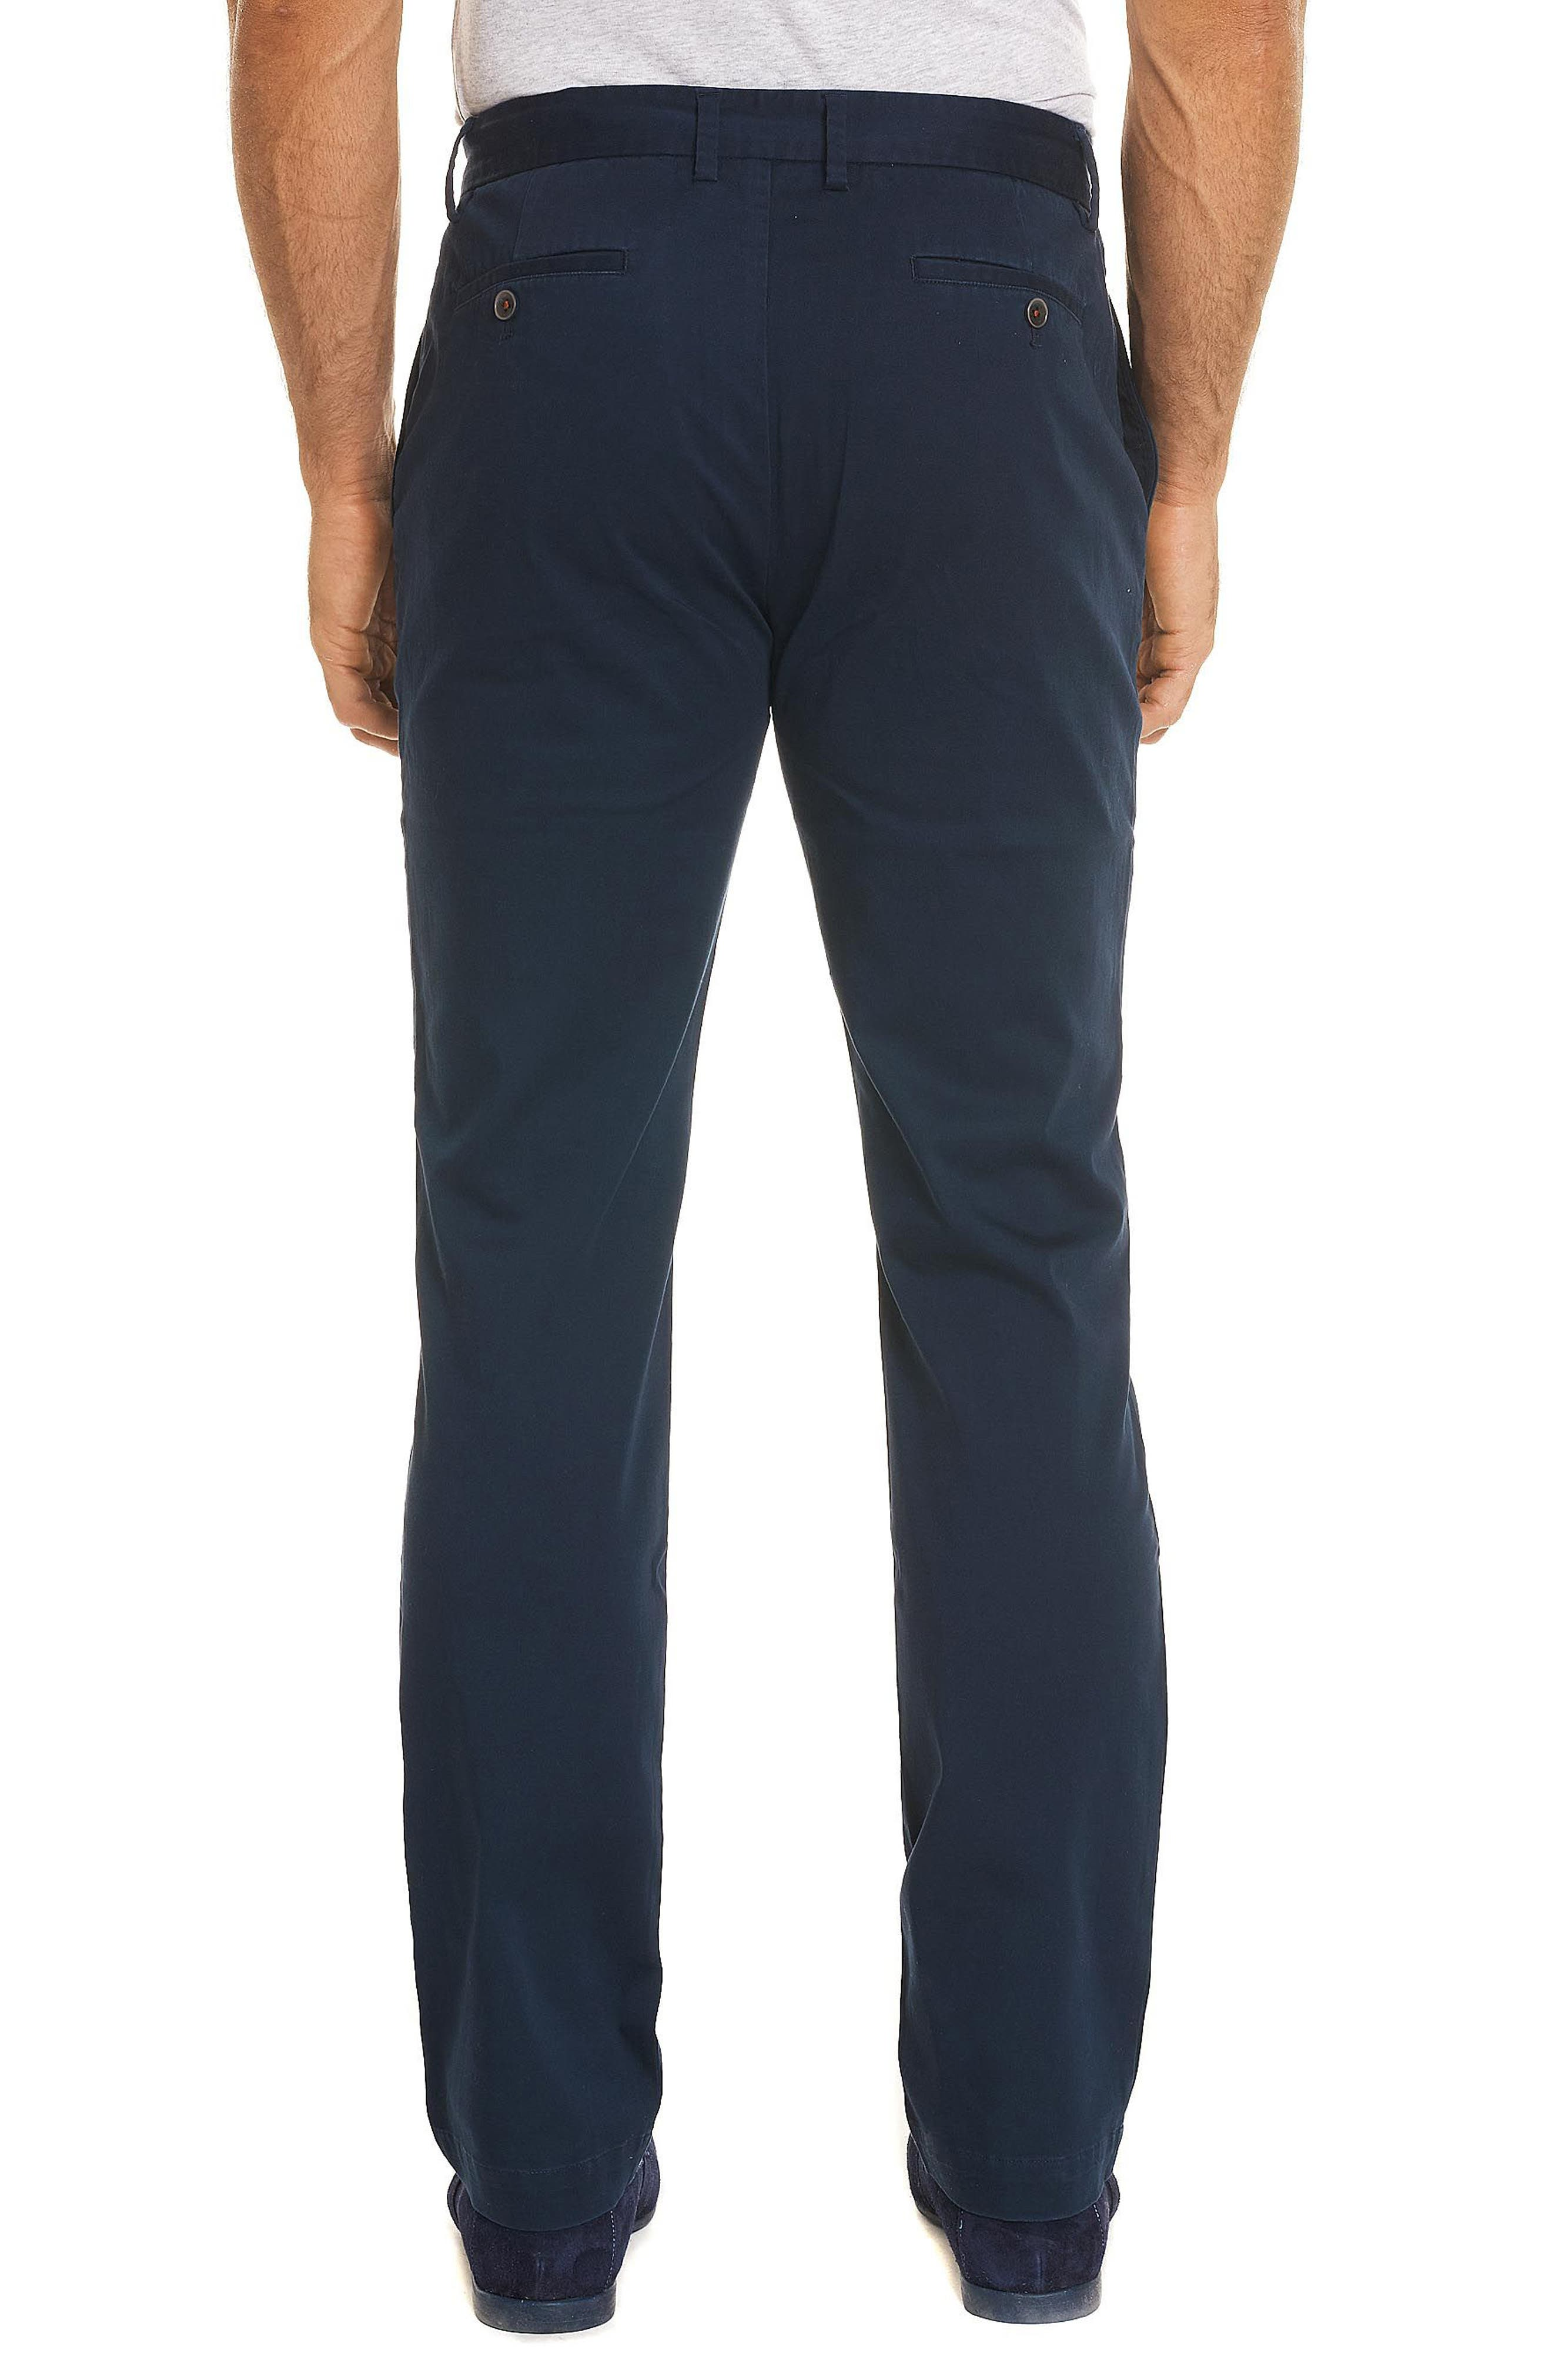 Burton Tailored Fit Pants,                             Alternate thumbnail 2, color,                             Navy